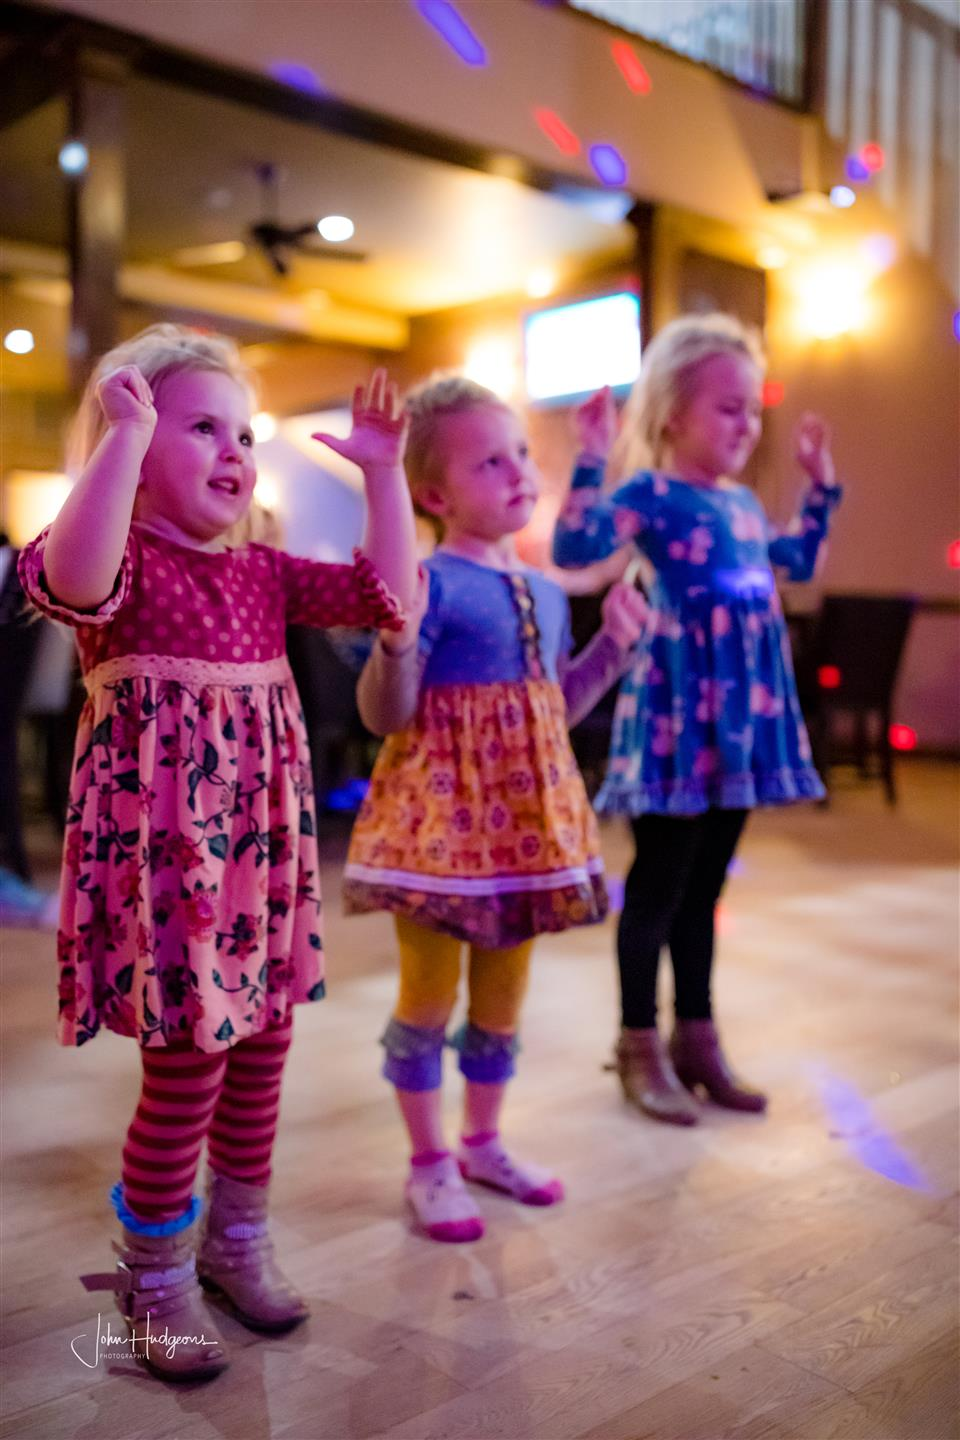 Three children dancing on dancefloor